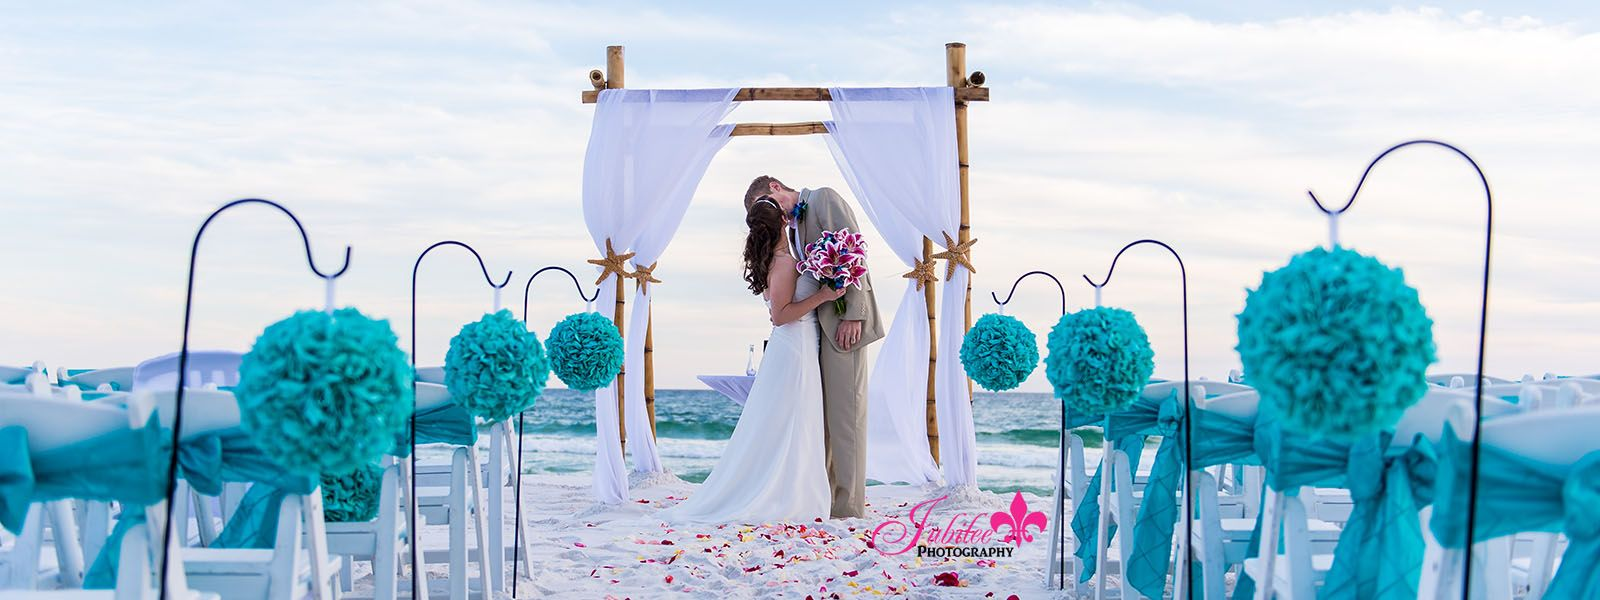 Destin Beach Weddings Company For Wedding Planner Packages In Florida